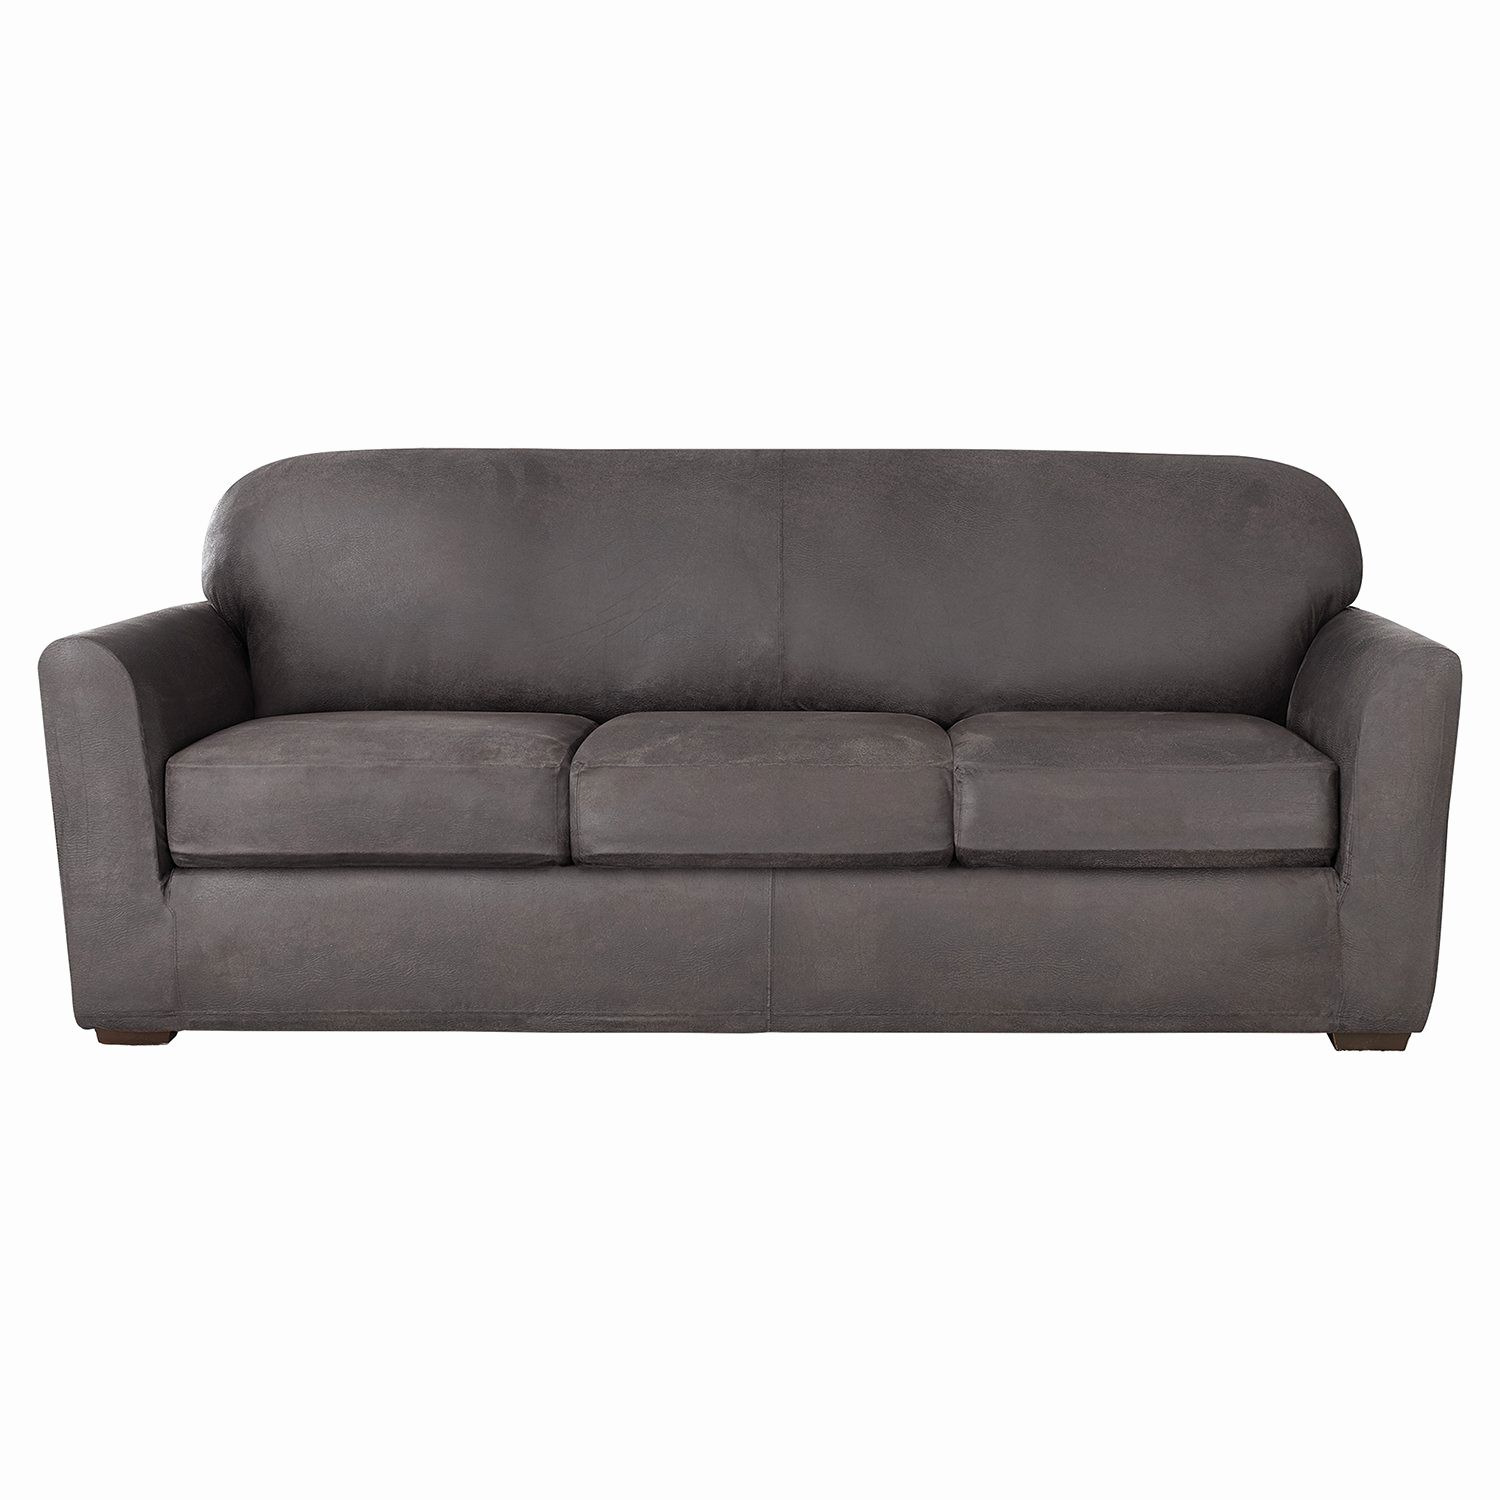 Luxury Sofa Covers Kohls Picture